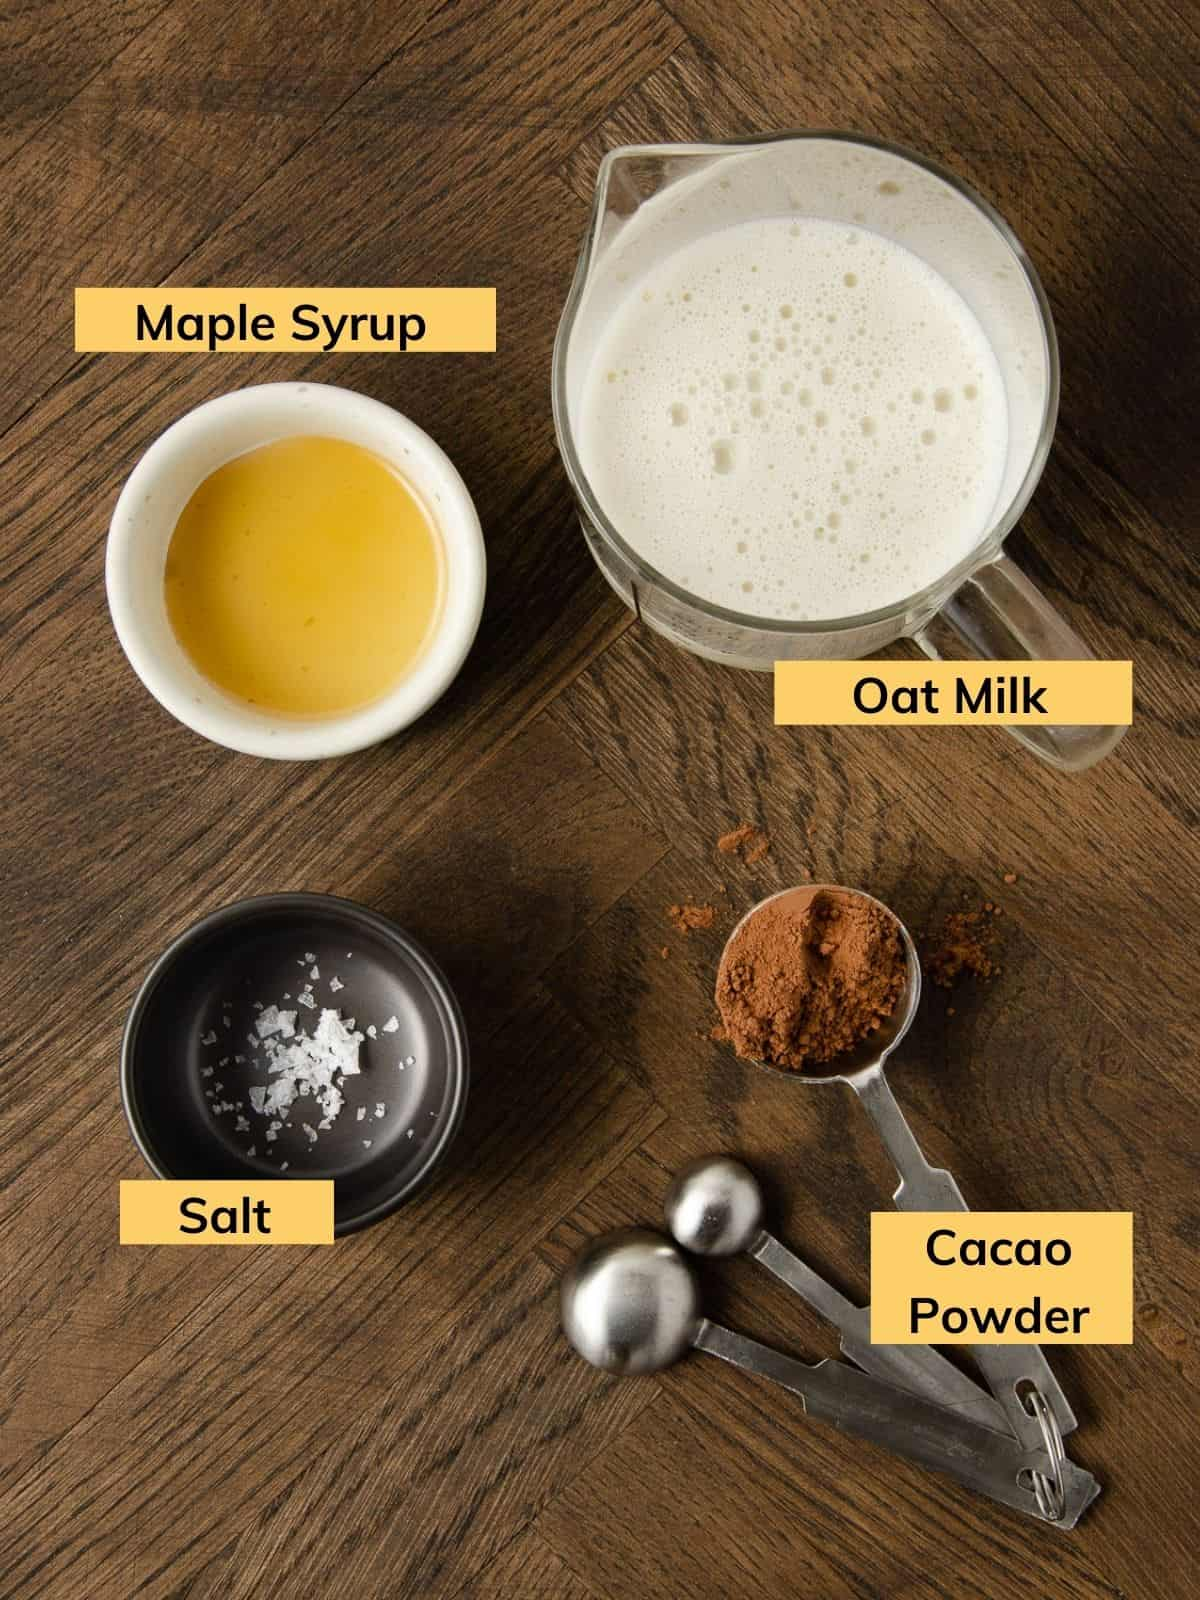 Ingredients for making an oat milk hot chocolate.